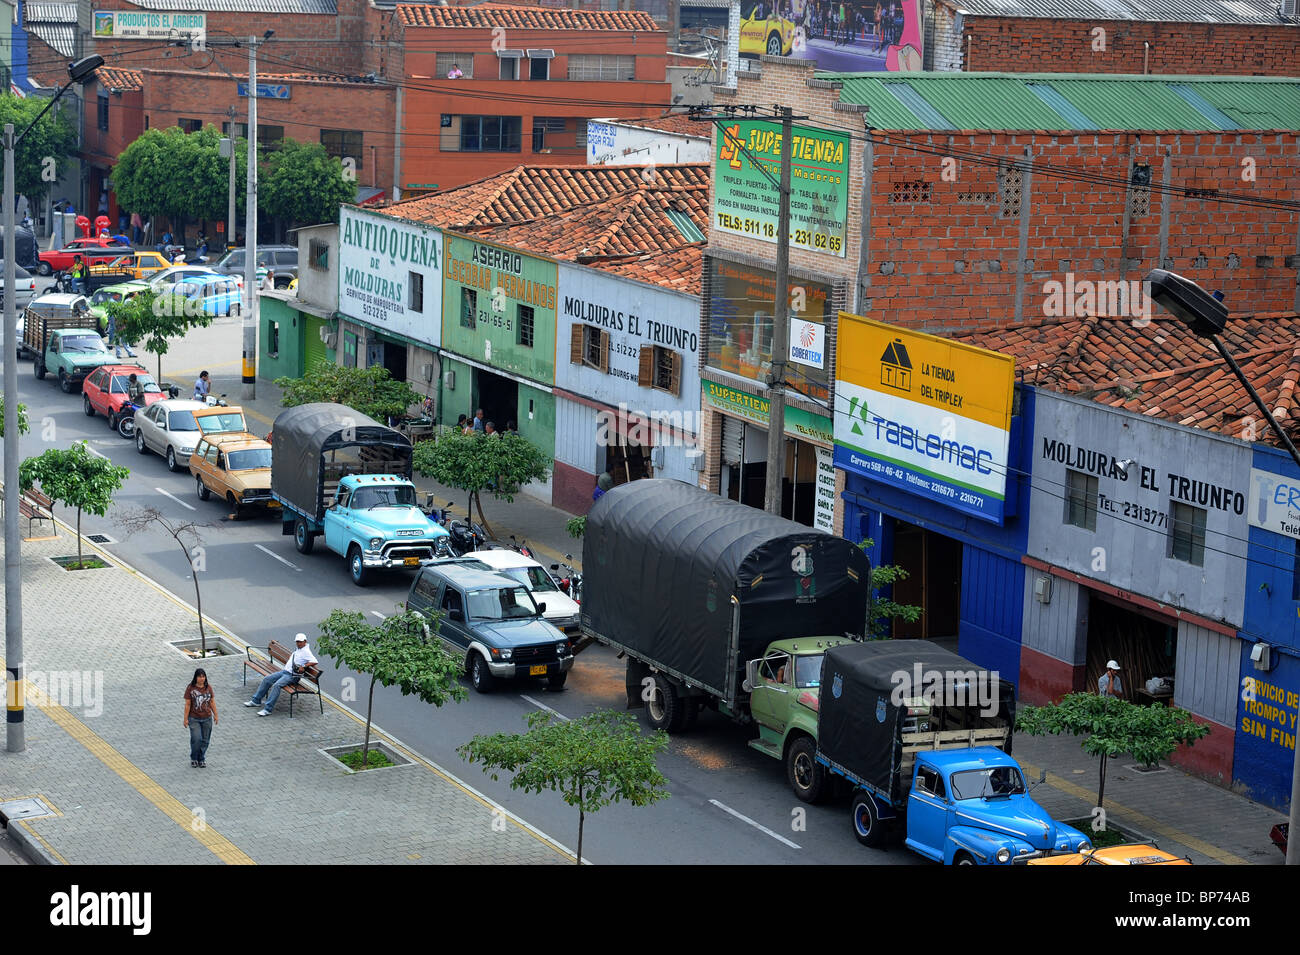 Traffic and parked vehicles on road outside stores in Medellin, South America - Stock Image